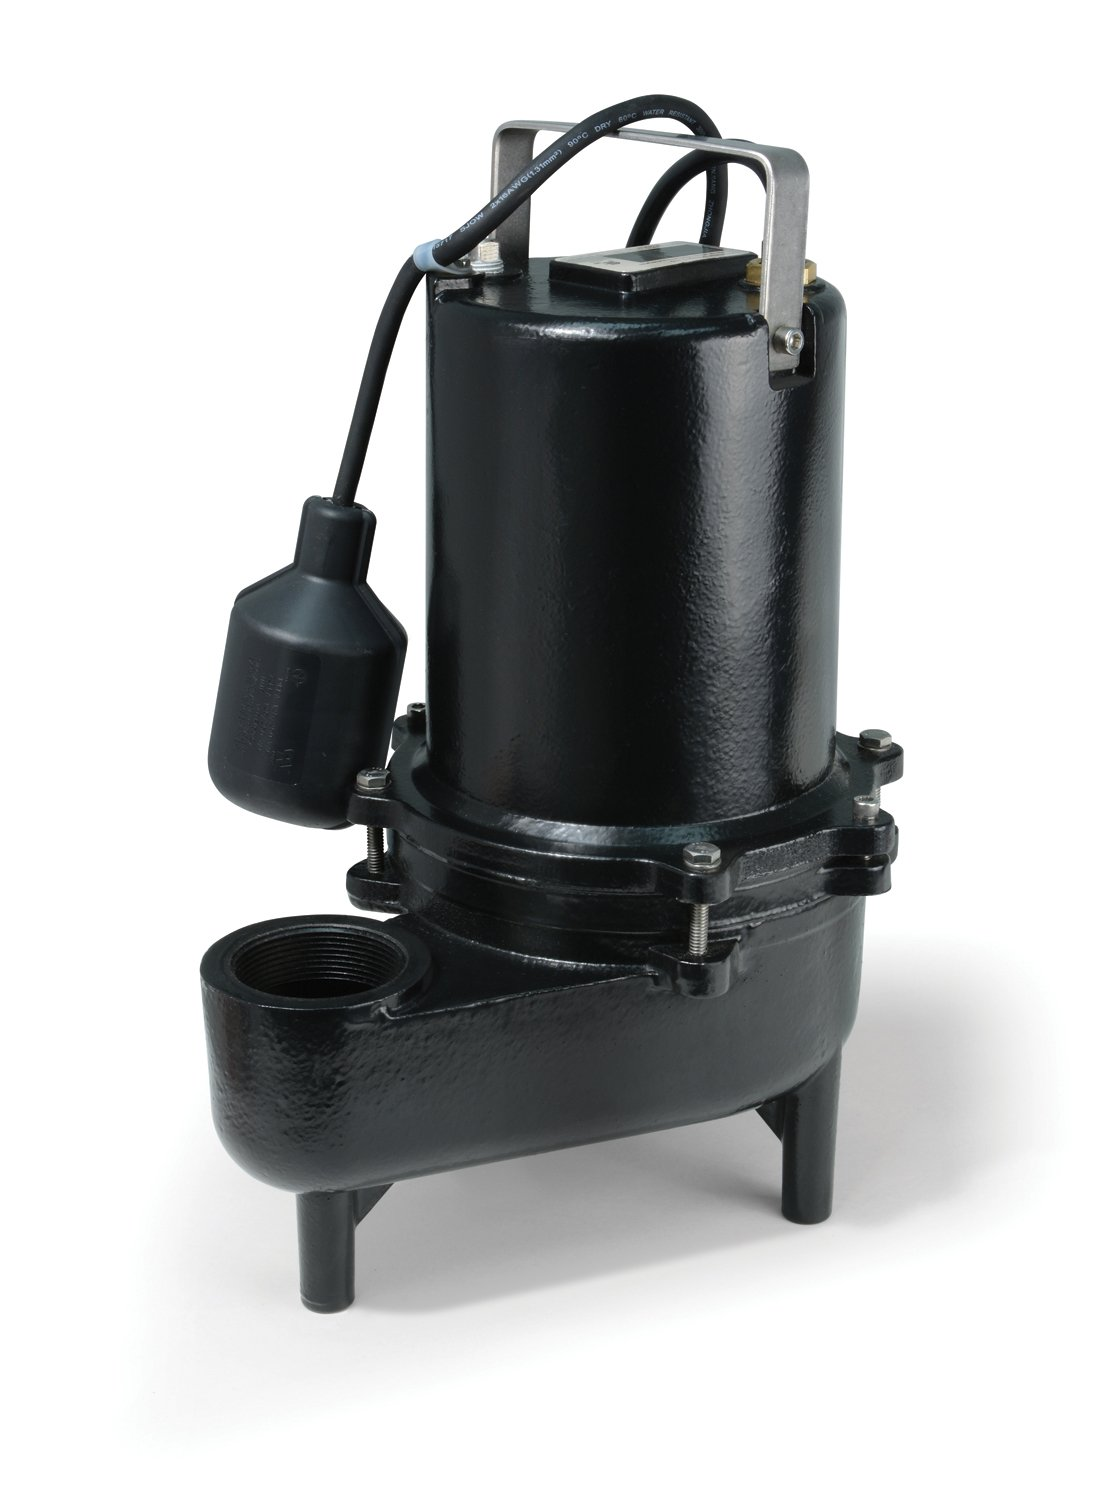 ECO-FLO Products ESE40W Cast Iron Sewage Pump with Wide Angle Switch,  4/10 HP, 6,600 GPH by ECO-FLO PRODUCTS INCORPORATED